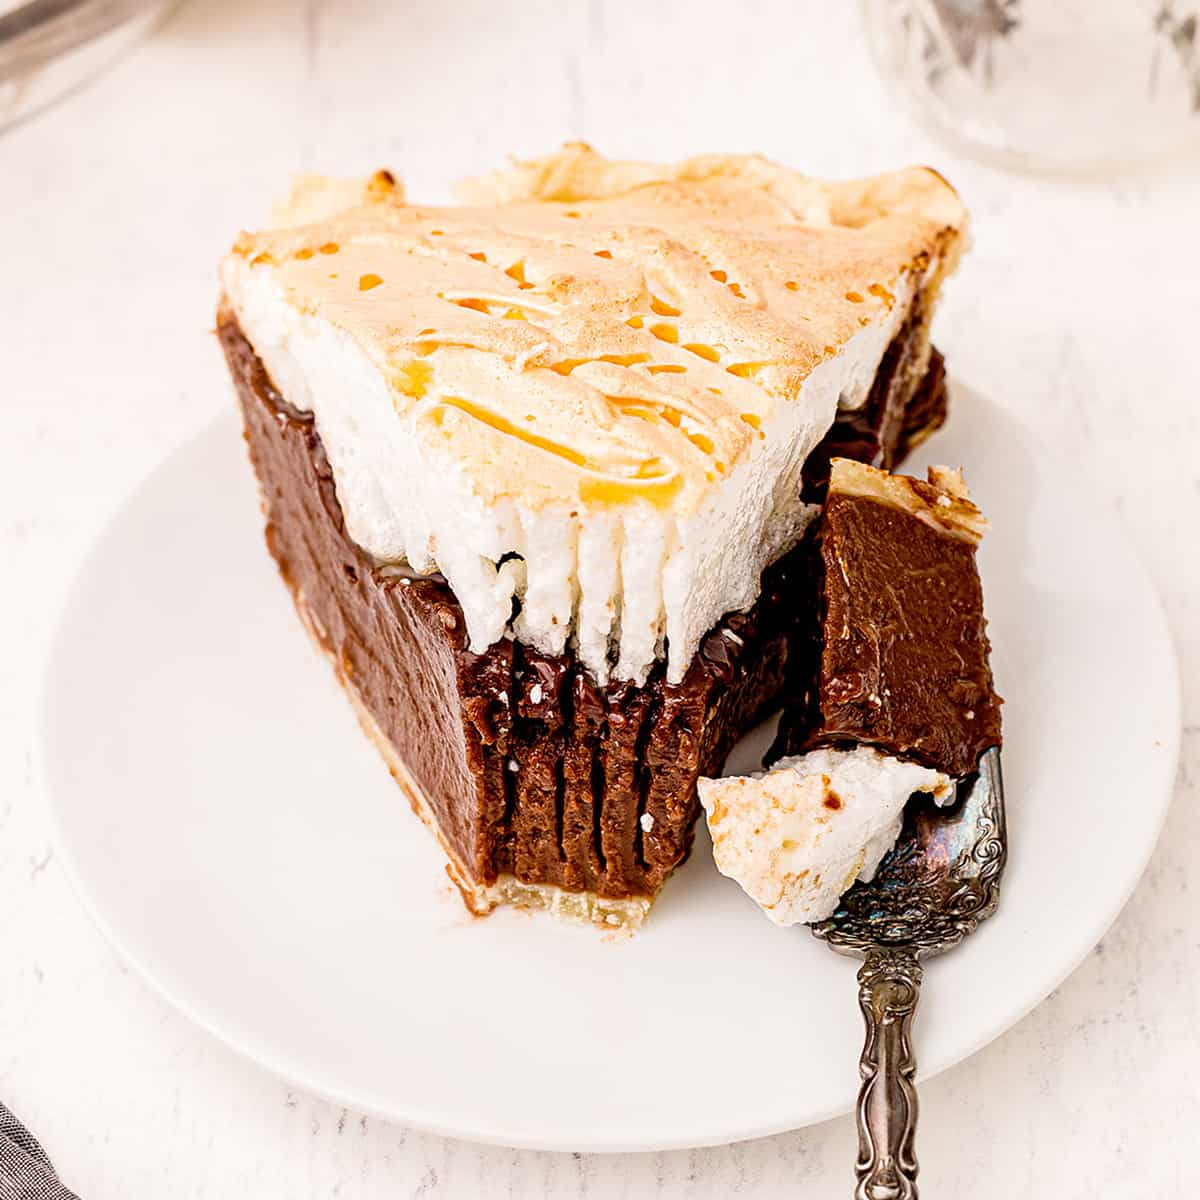 A slice of old fashioned chocolate meringue pie on a white serving plate.